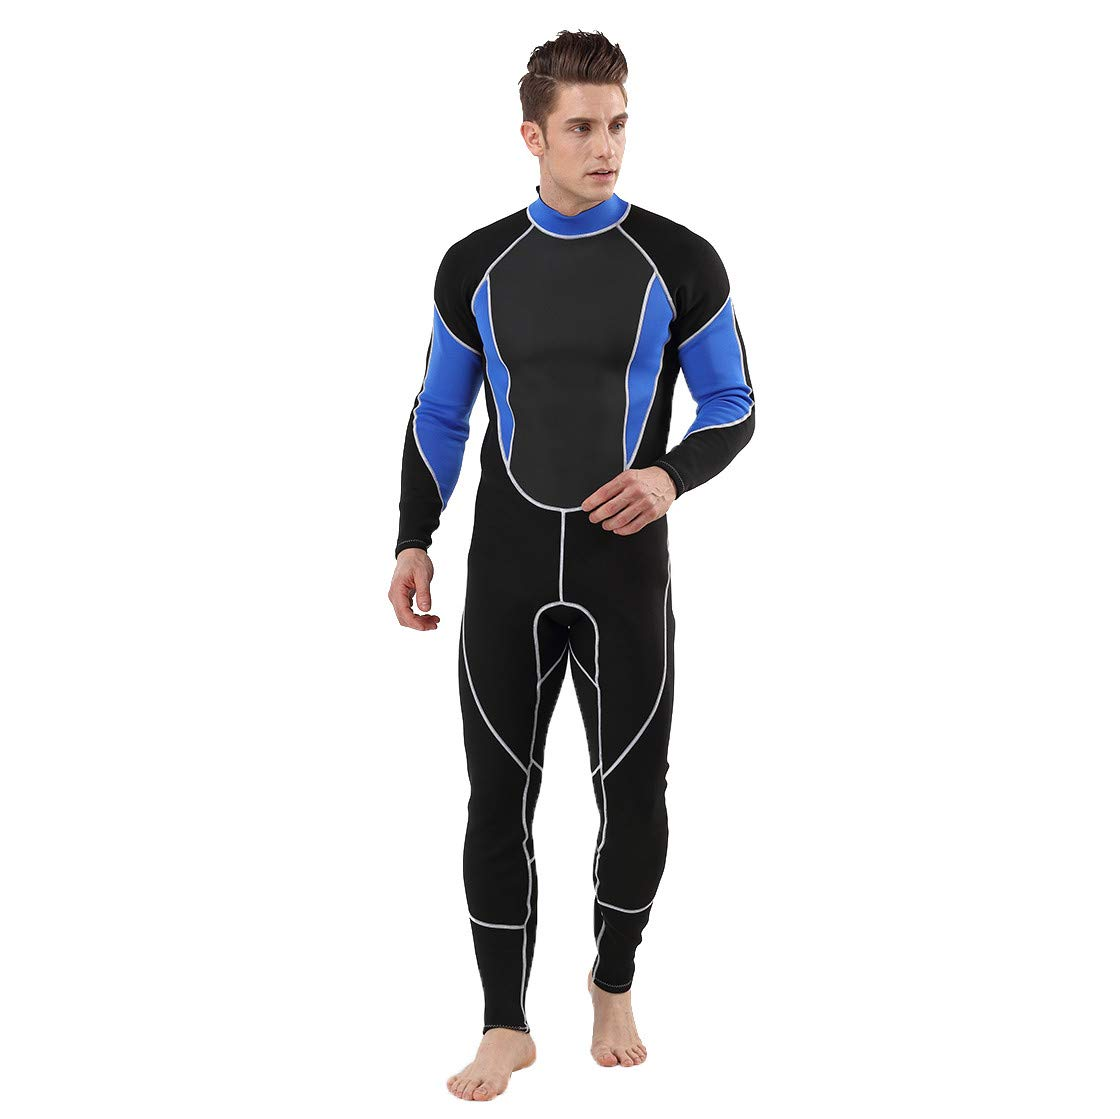 Allywit Wetsuit 3MM Full Body Suit Super Stretch Diving Suit Swim Surf Snorkeling Swimming Jumpsuit Blue